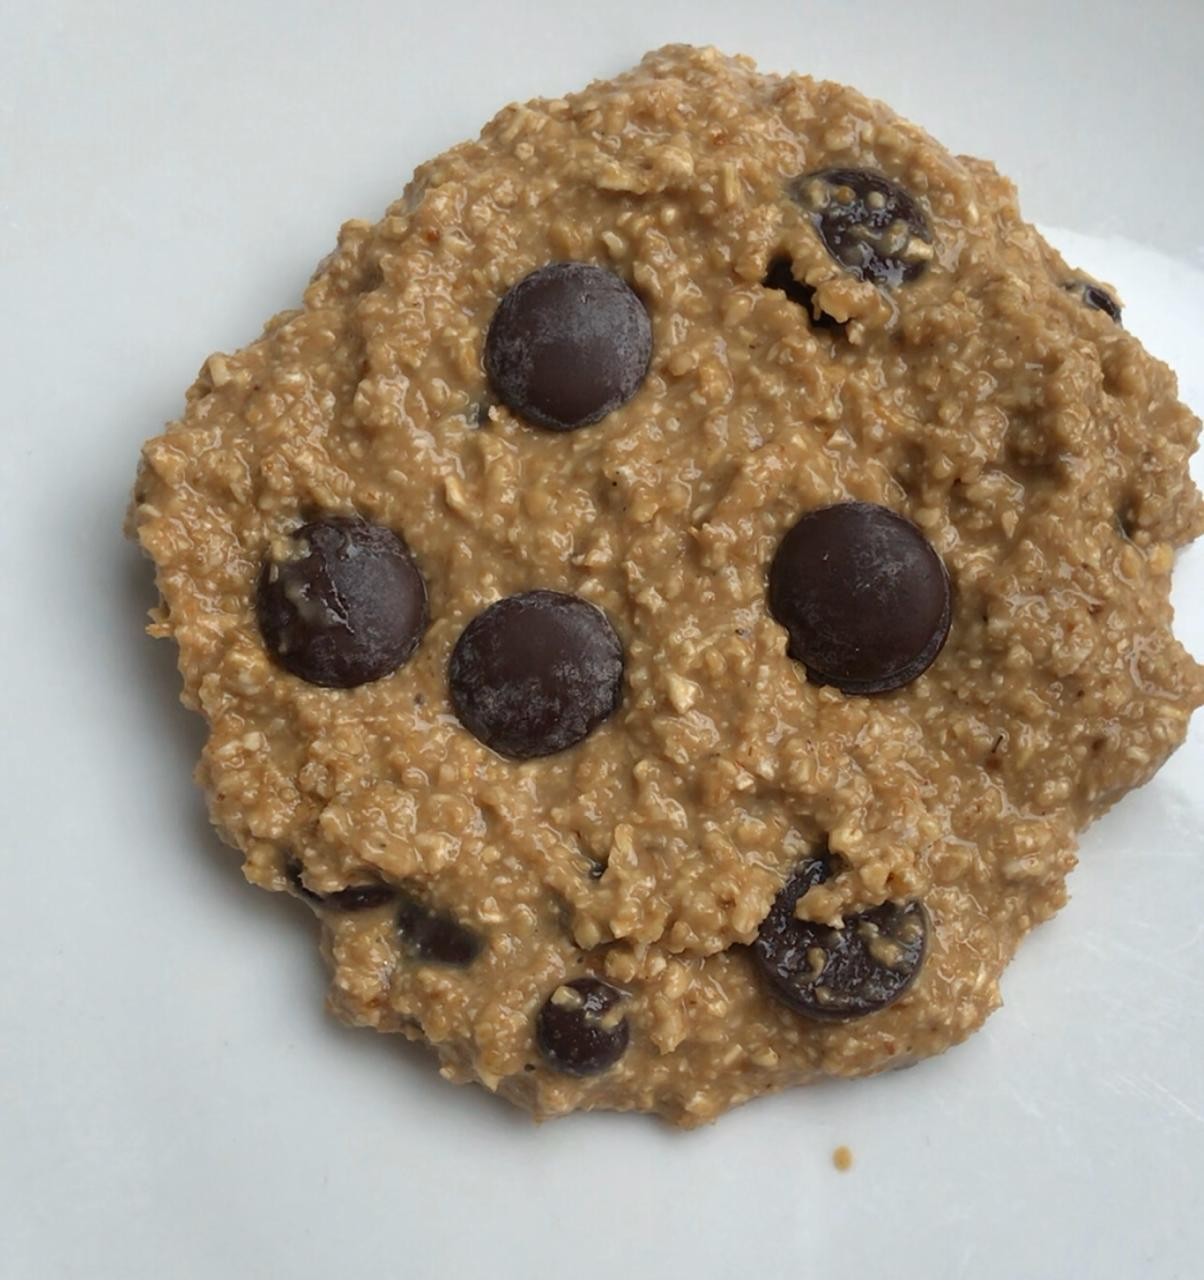 Shaping single serving oatmeal cookie